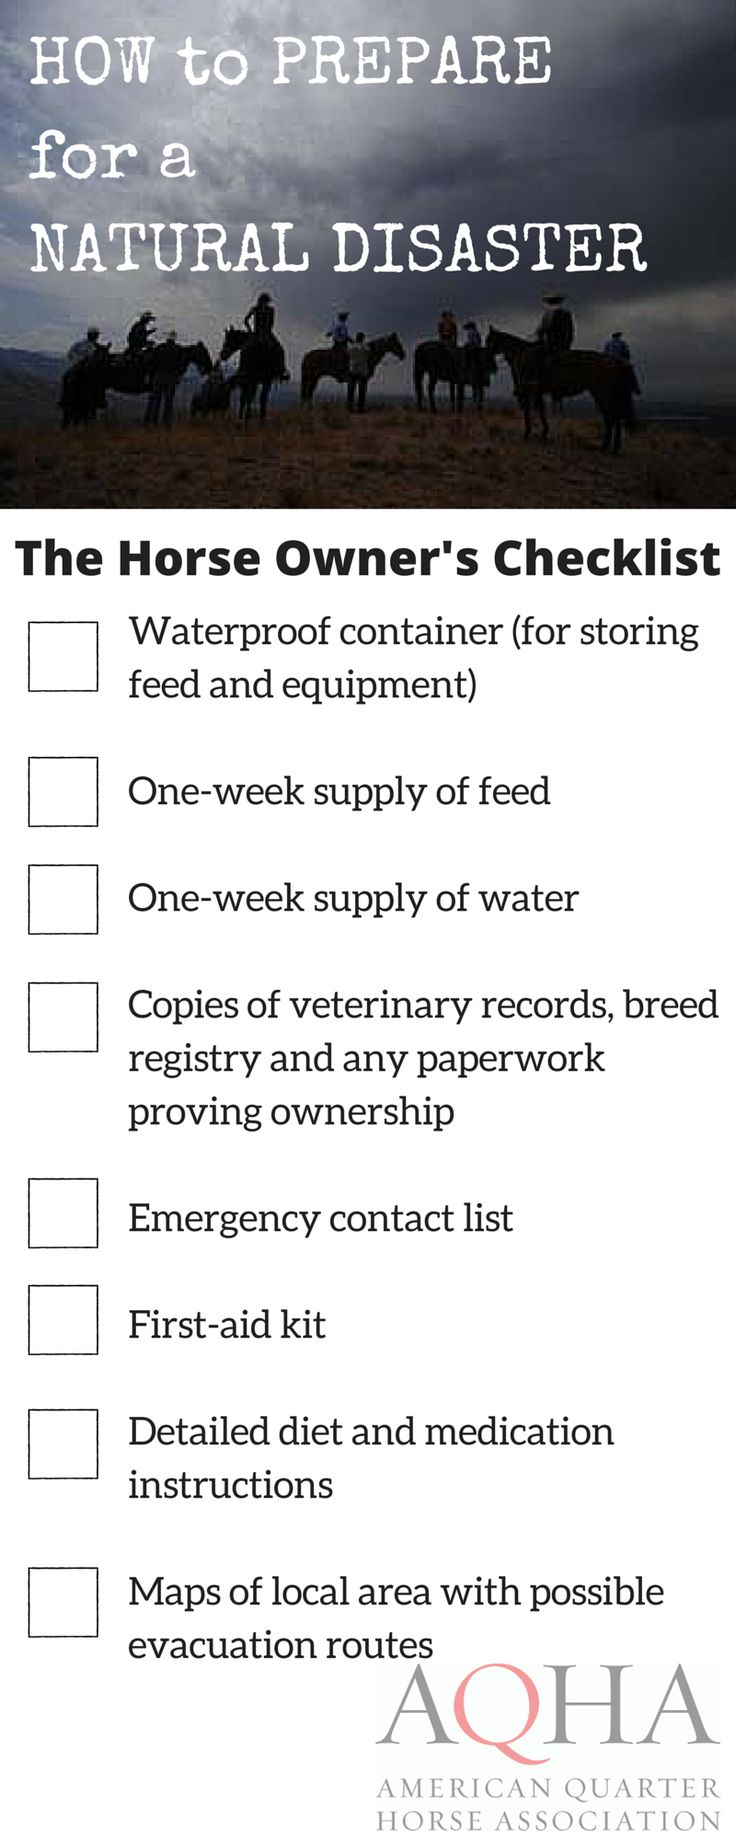 Horse Owner's Checklist: Preparing for a Natural Disaster (flooding, hurricanes, tornadoes, wildfires or earthquakes)